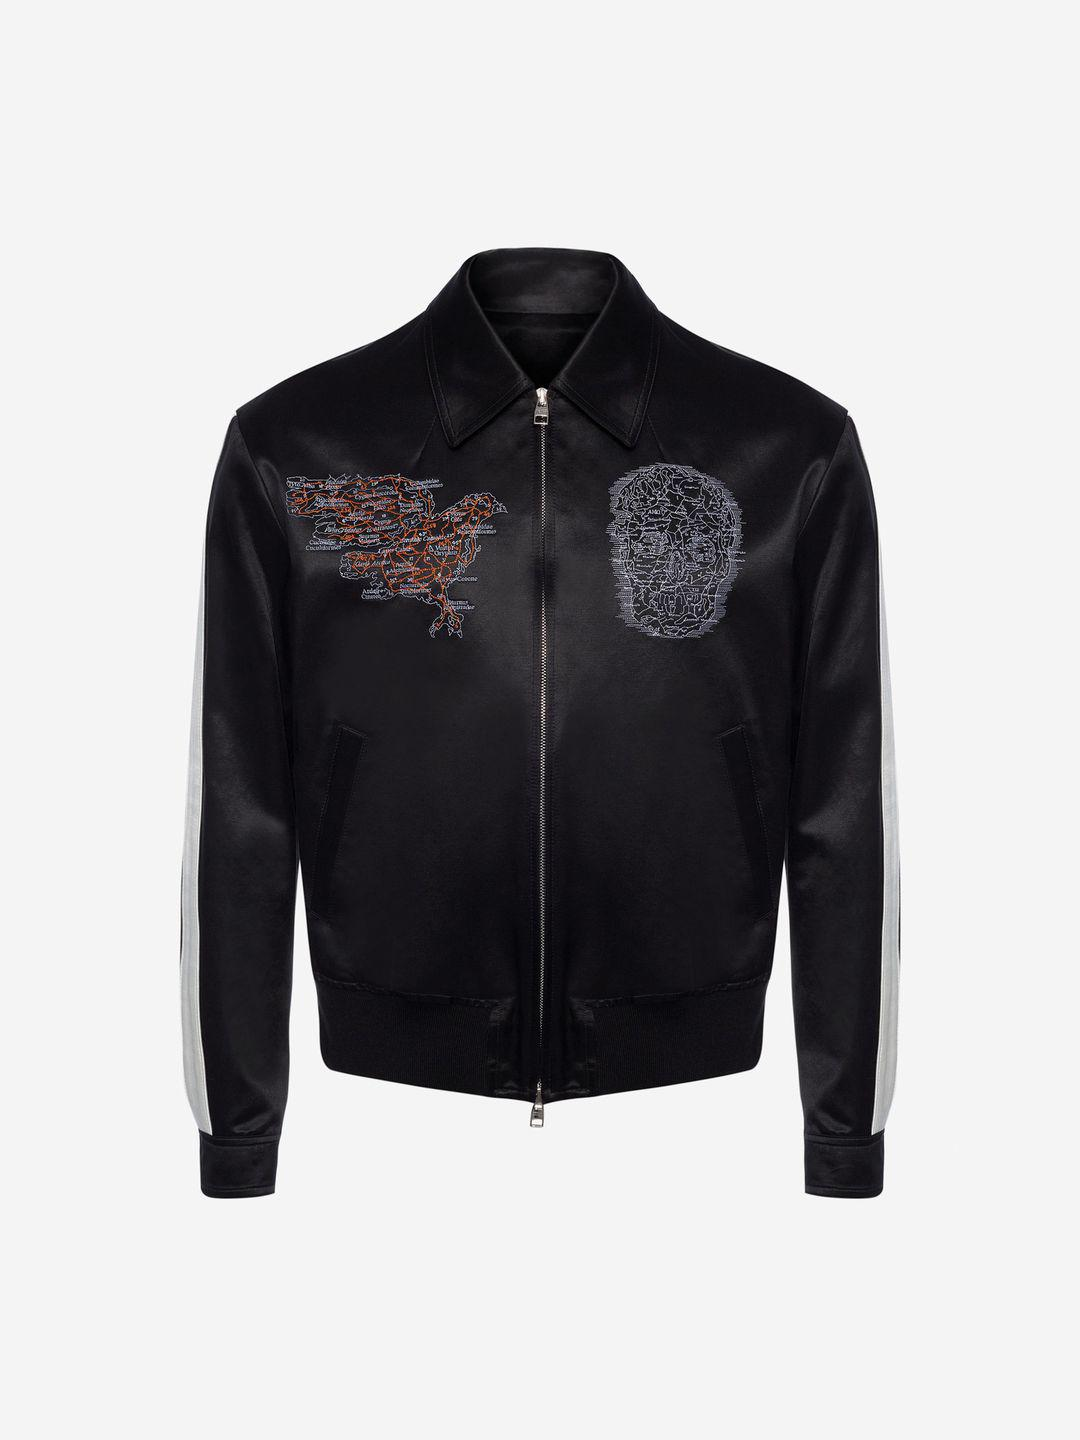 c090bea66d7 Lyst - Alexander McQueen Embroidered Skull Map Bomber Jacket in ...